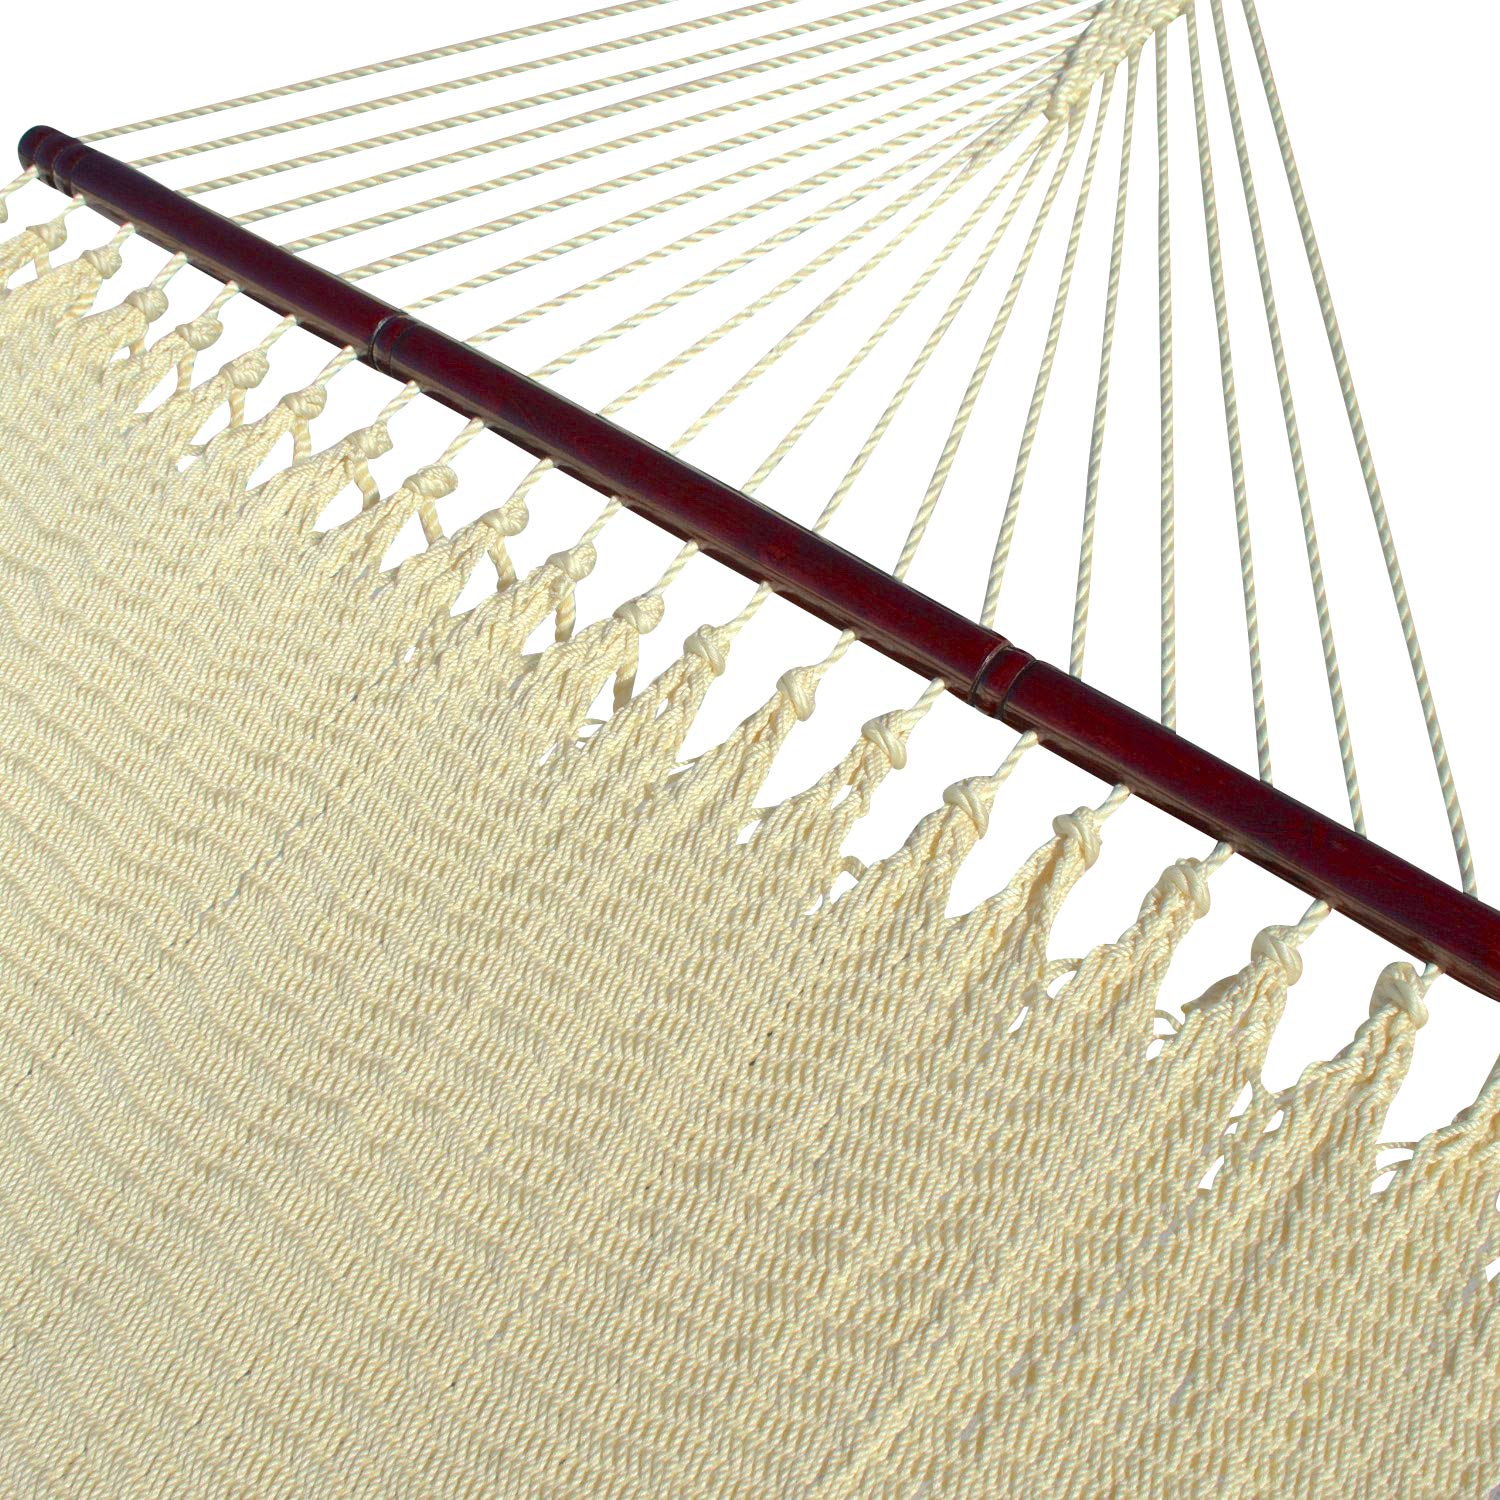 Caribbean Hammocks Double 48 inch – Soft-Spun Polyester – Cream